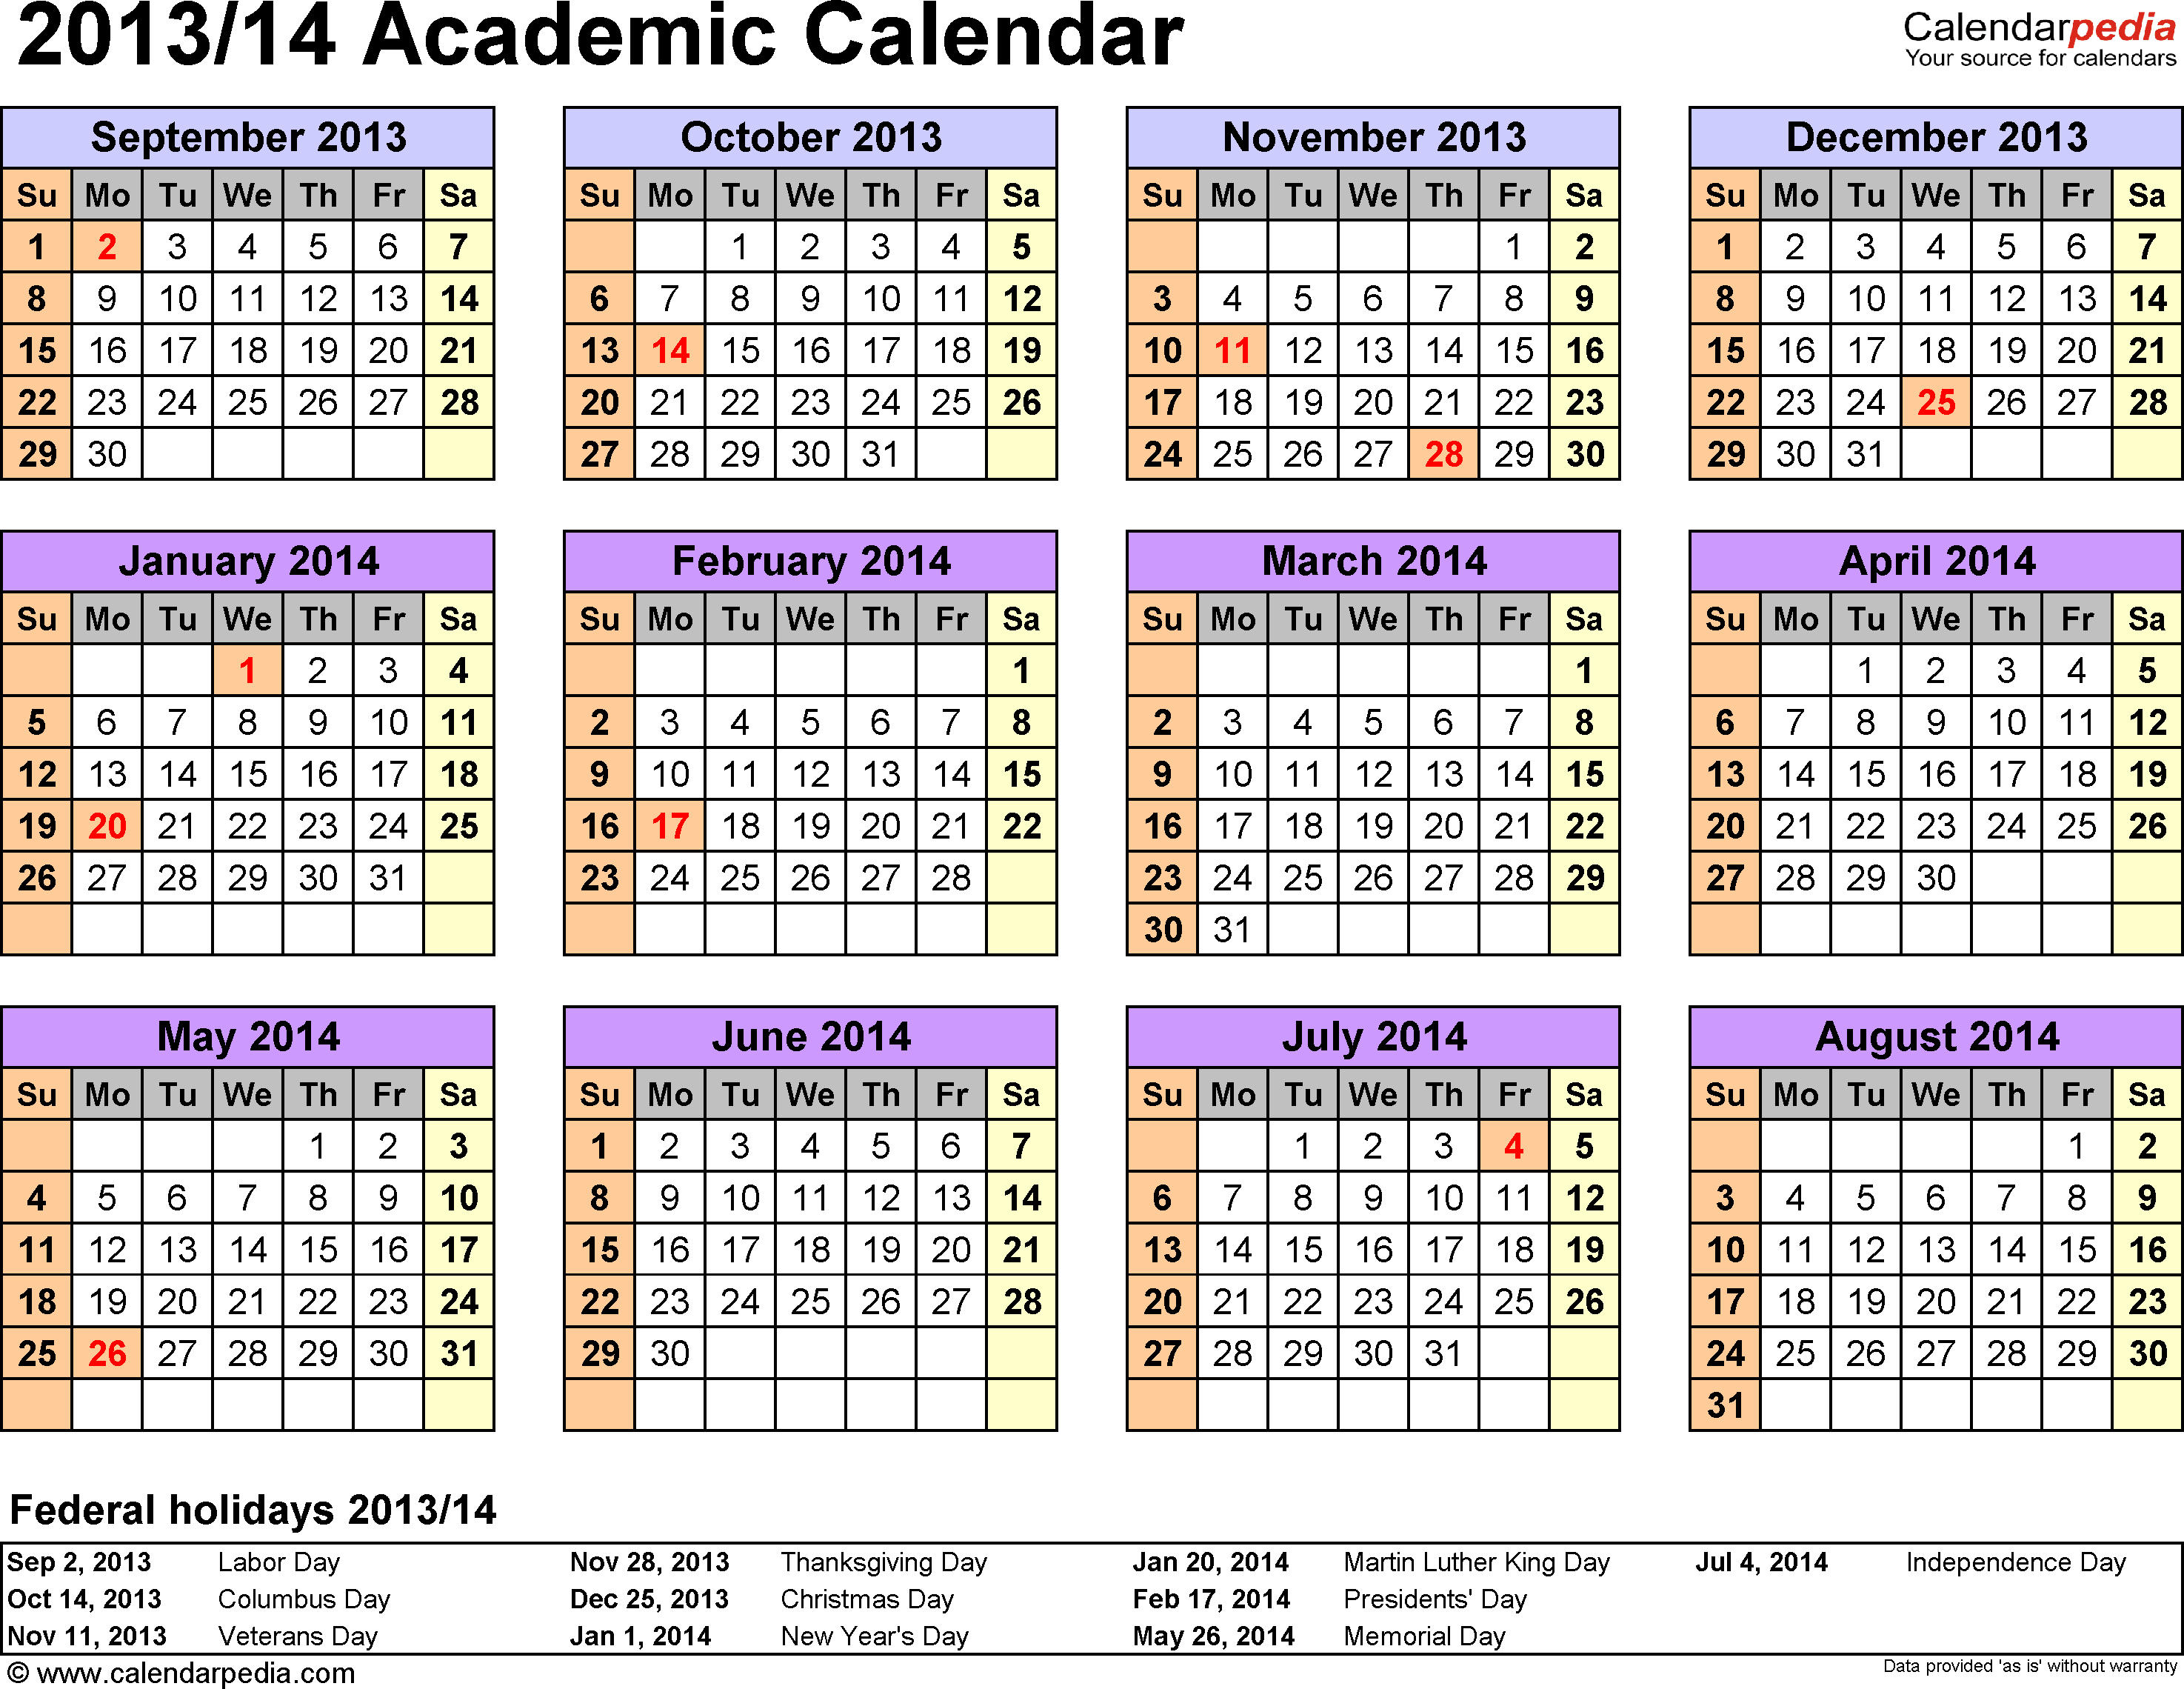 Download Template 3: Academic calendar 2013/14 for Microsoft Excel (.xlsx file), landscape, 1 page, year at a glance